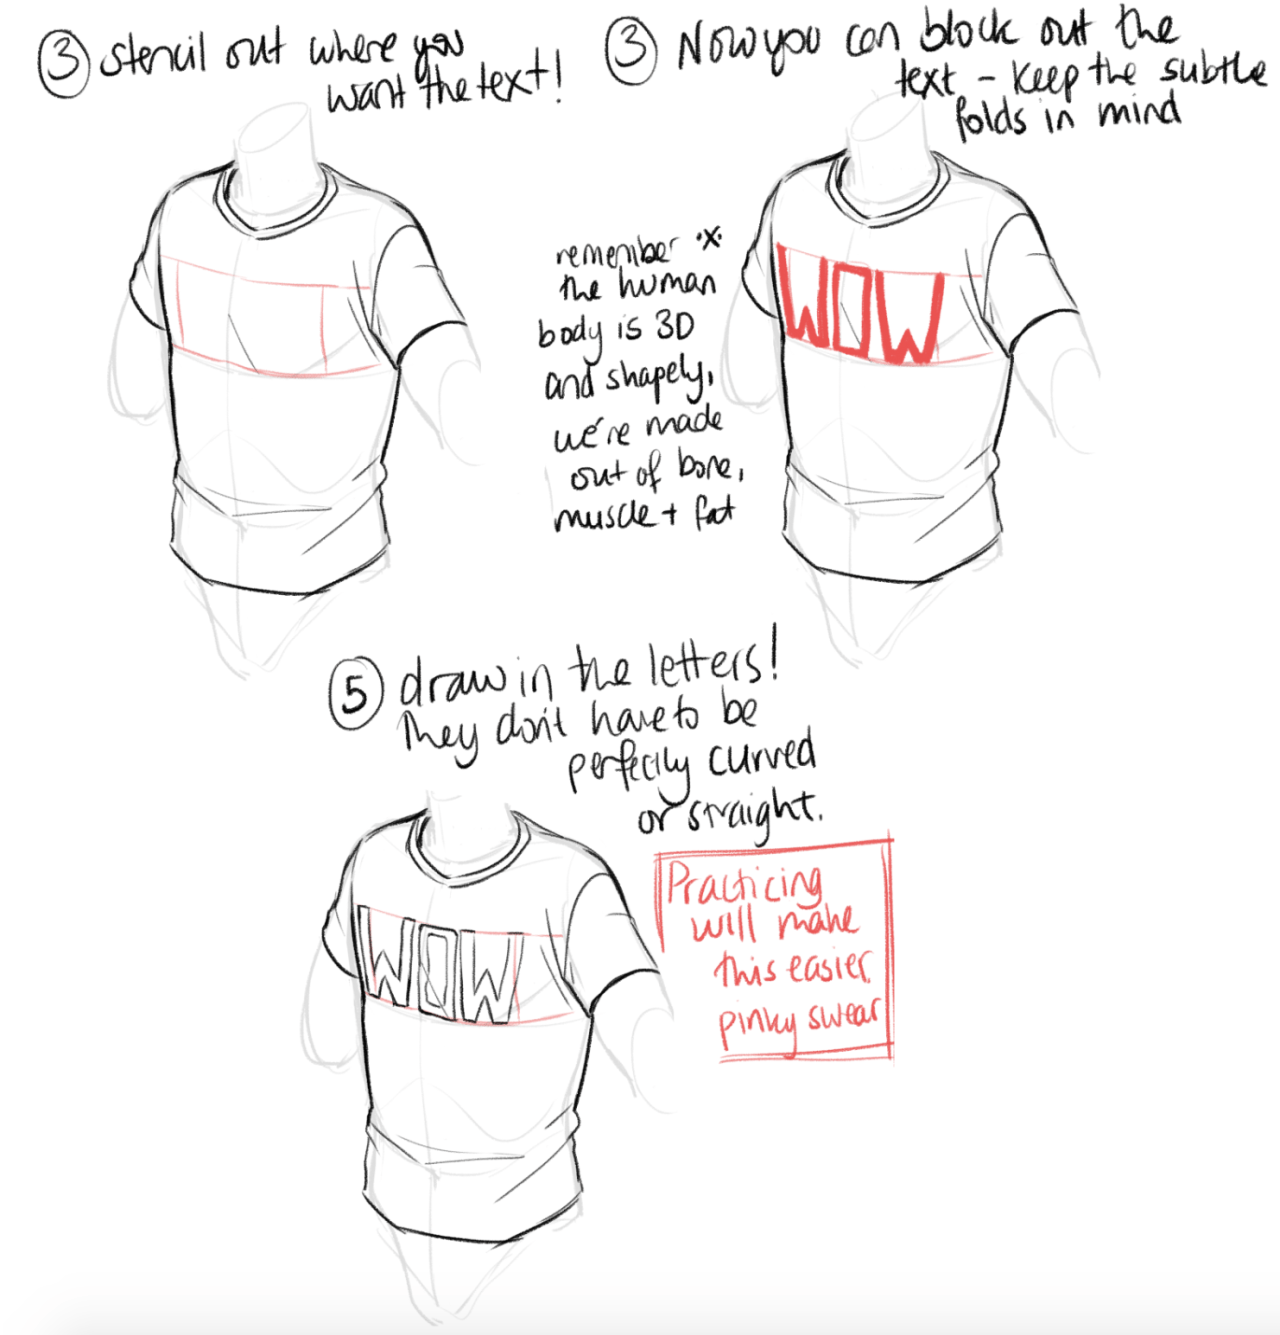 Tips, tricks and ideas for drawing — i have a question